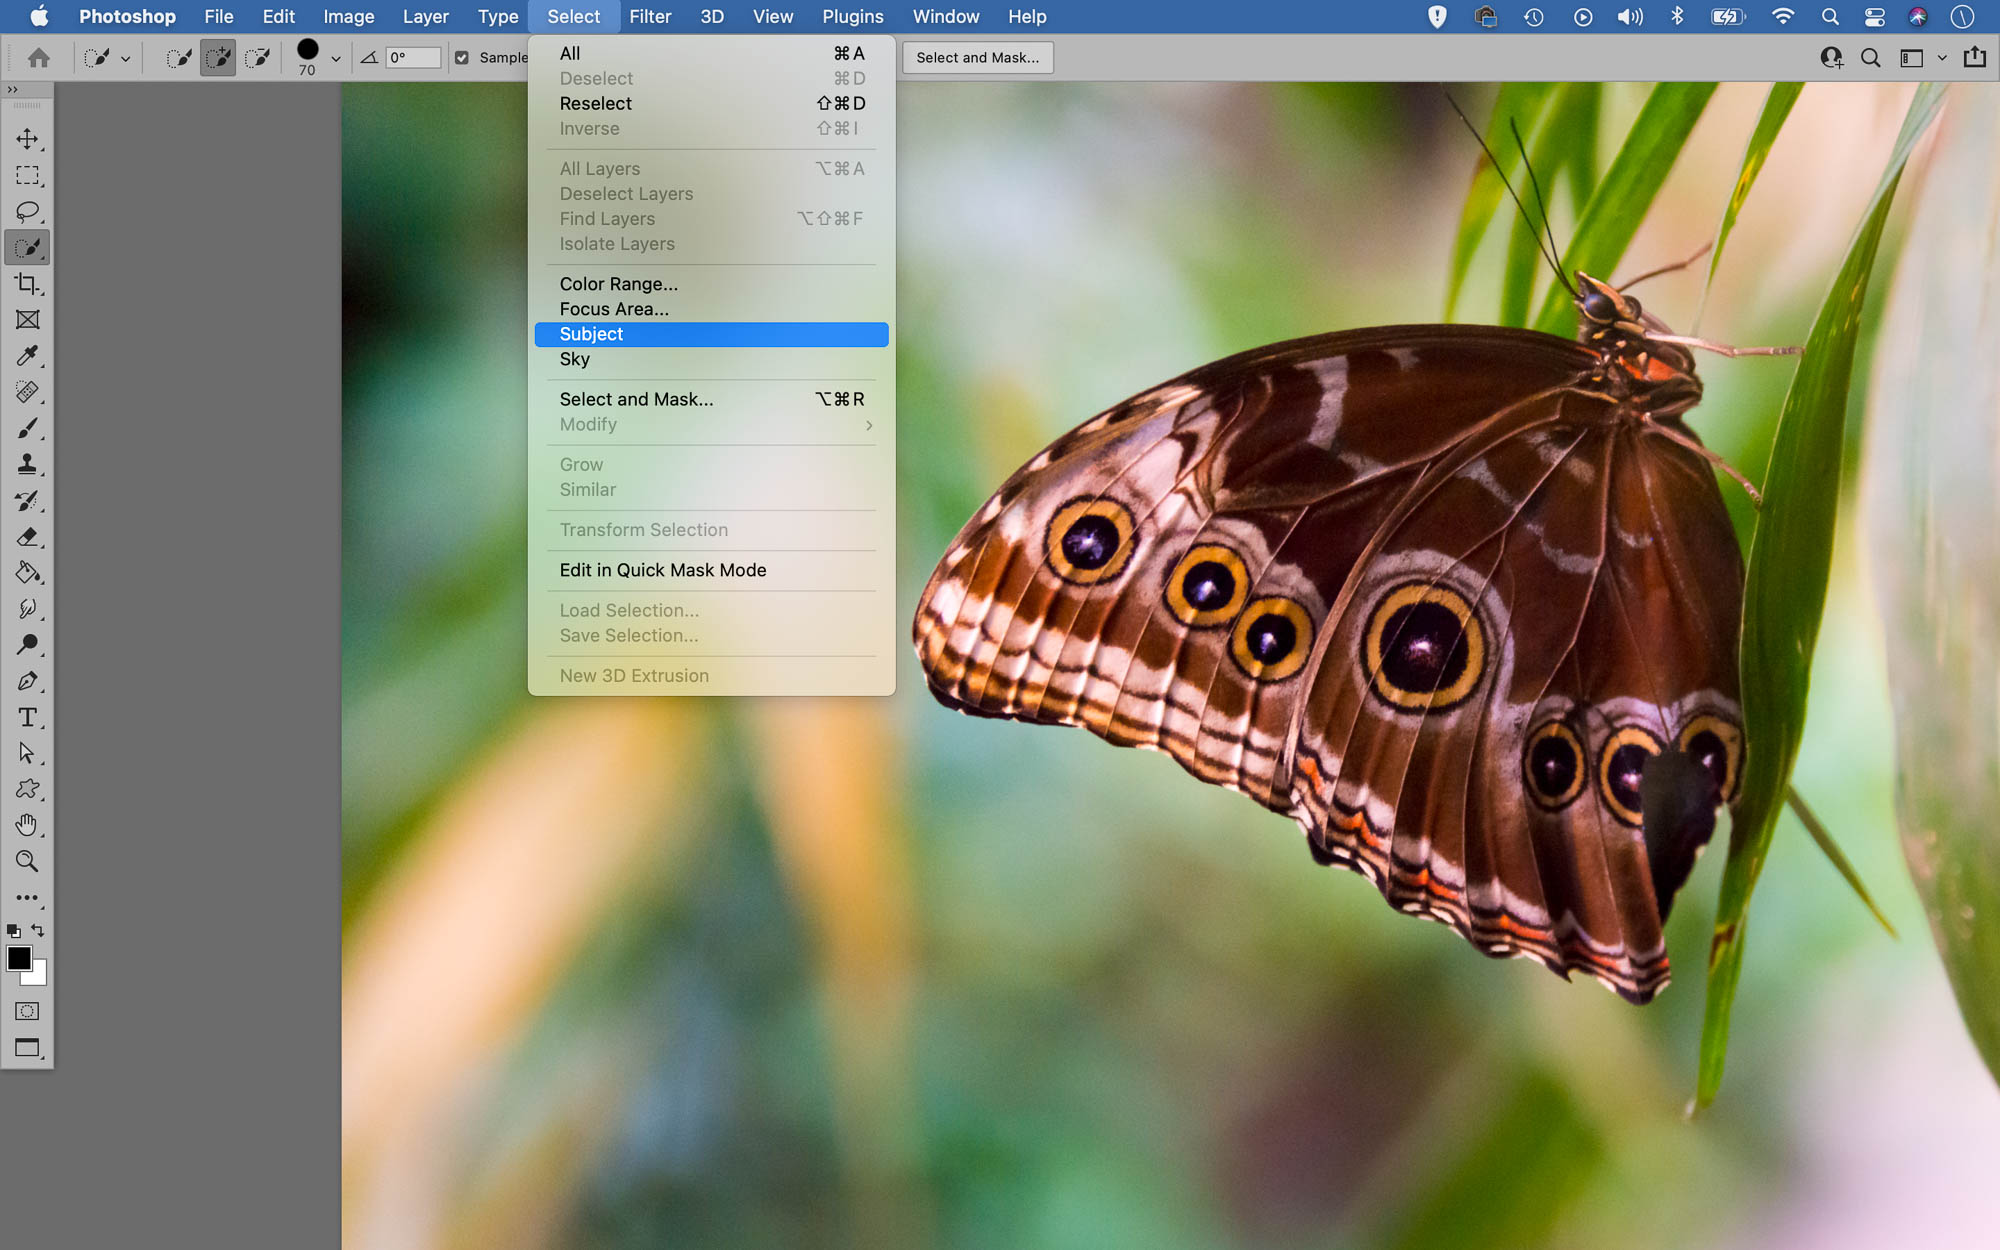 Screenshot showing Photoshop's Select Subject feature